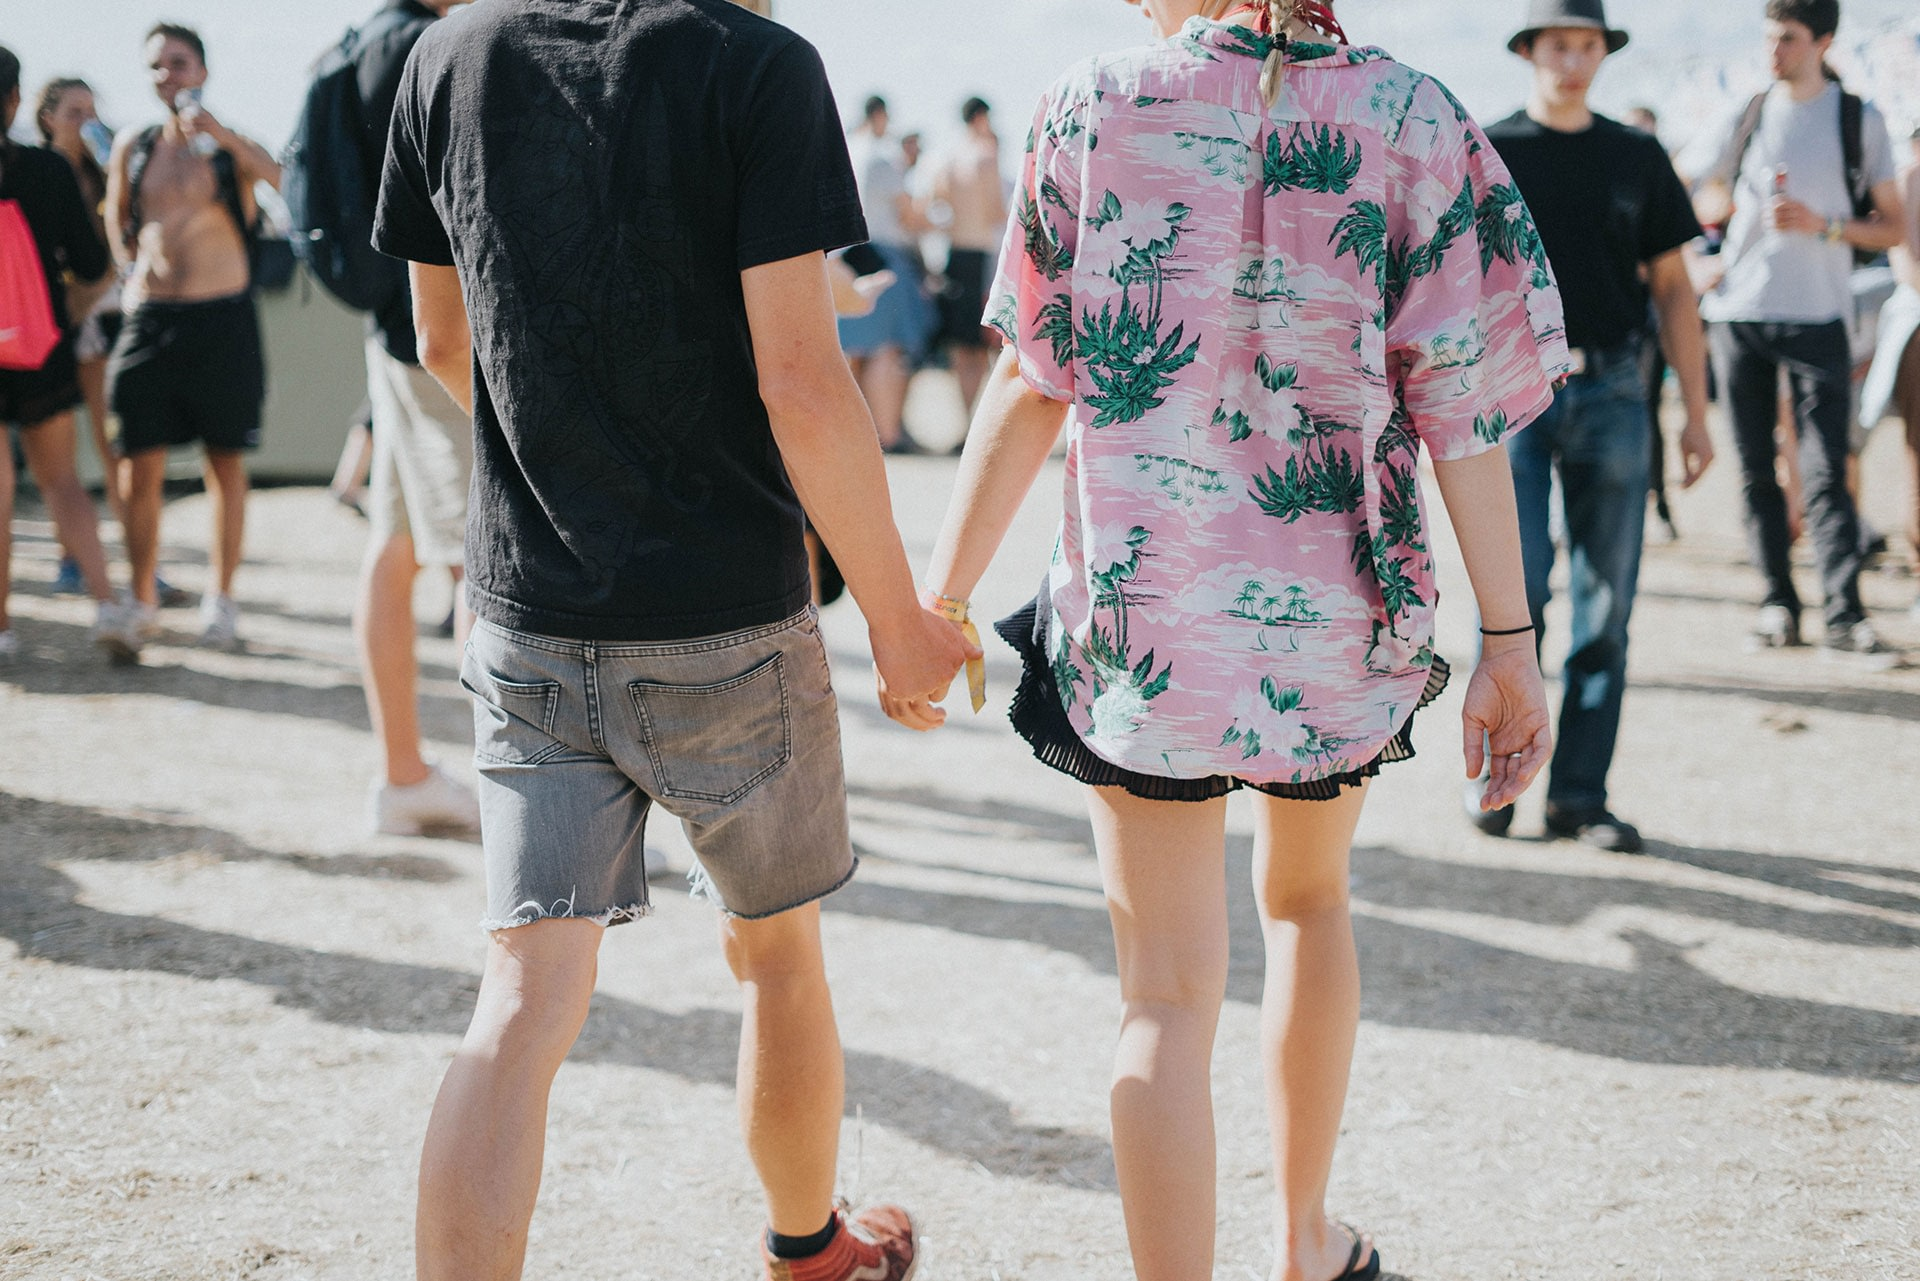 Partners holding hands in a crowd as part of their love style